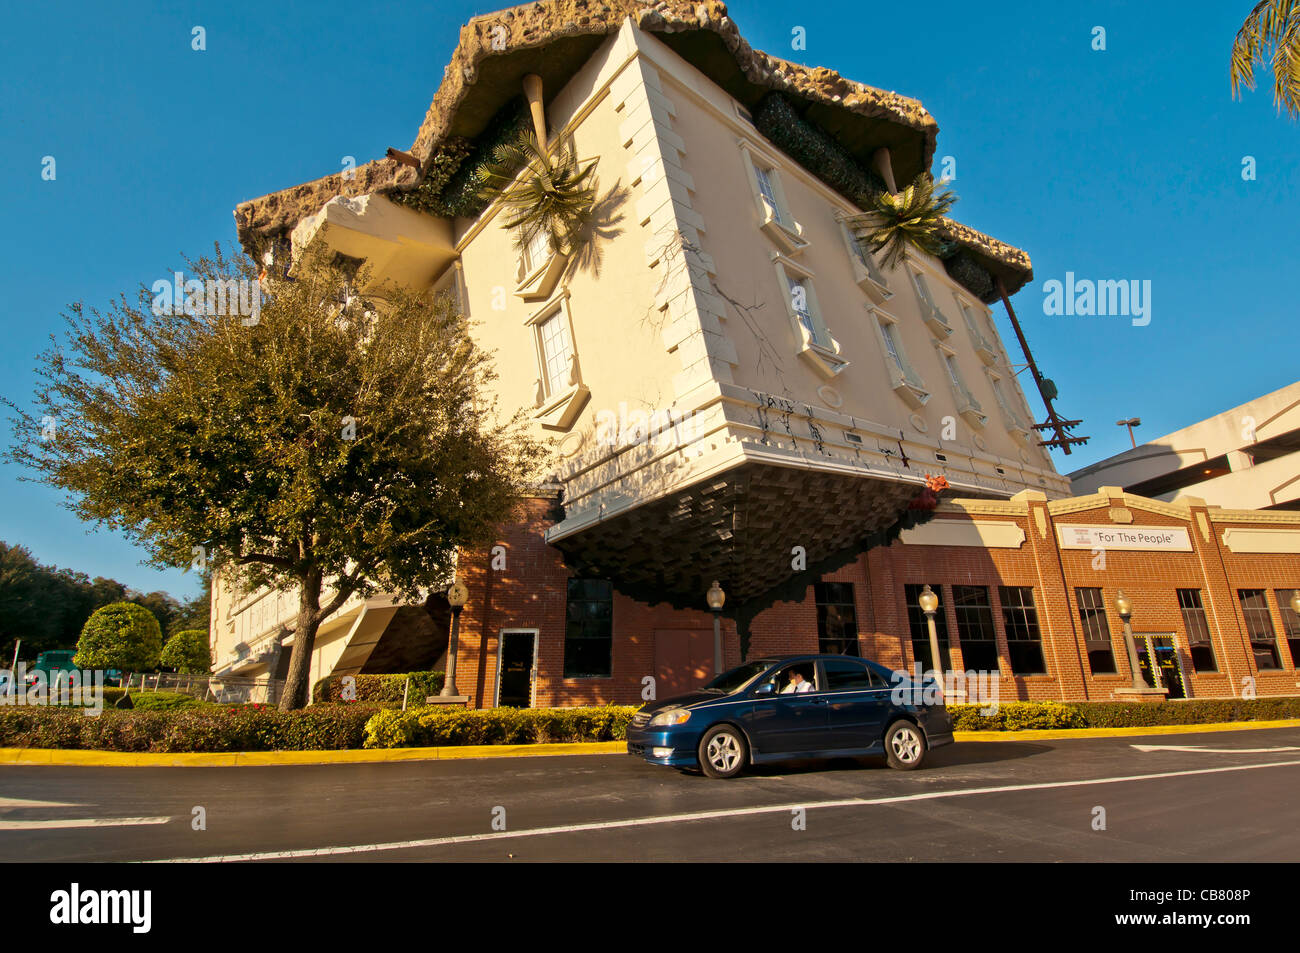 Wonderworks Attraction Upsidedown Building With Auto For